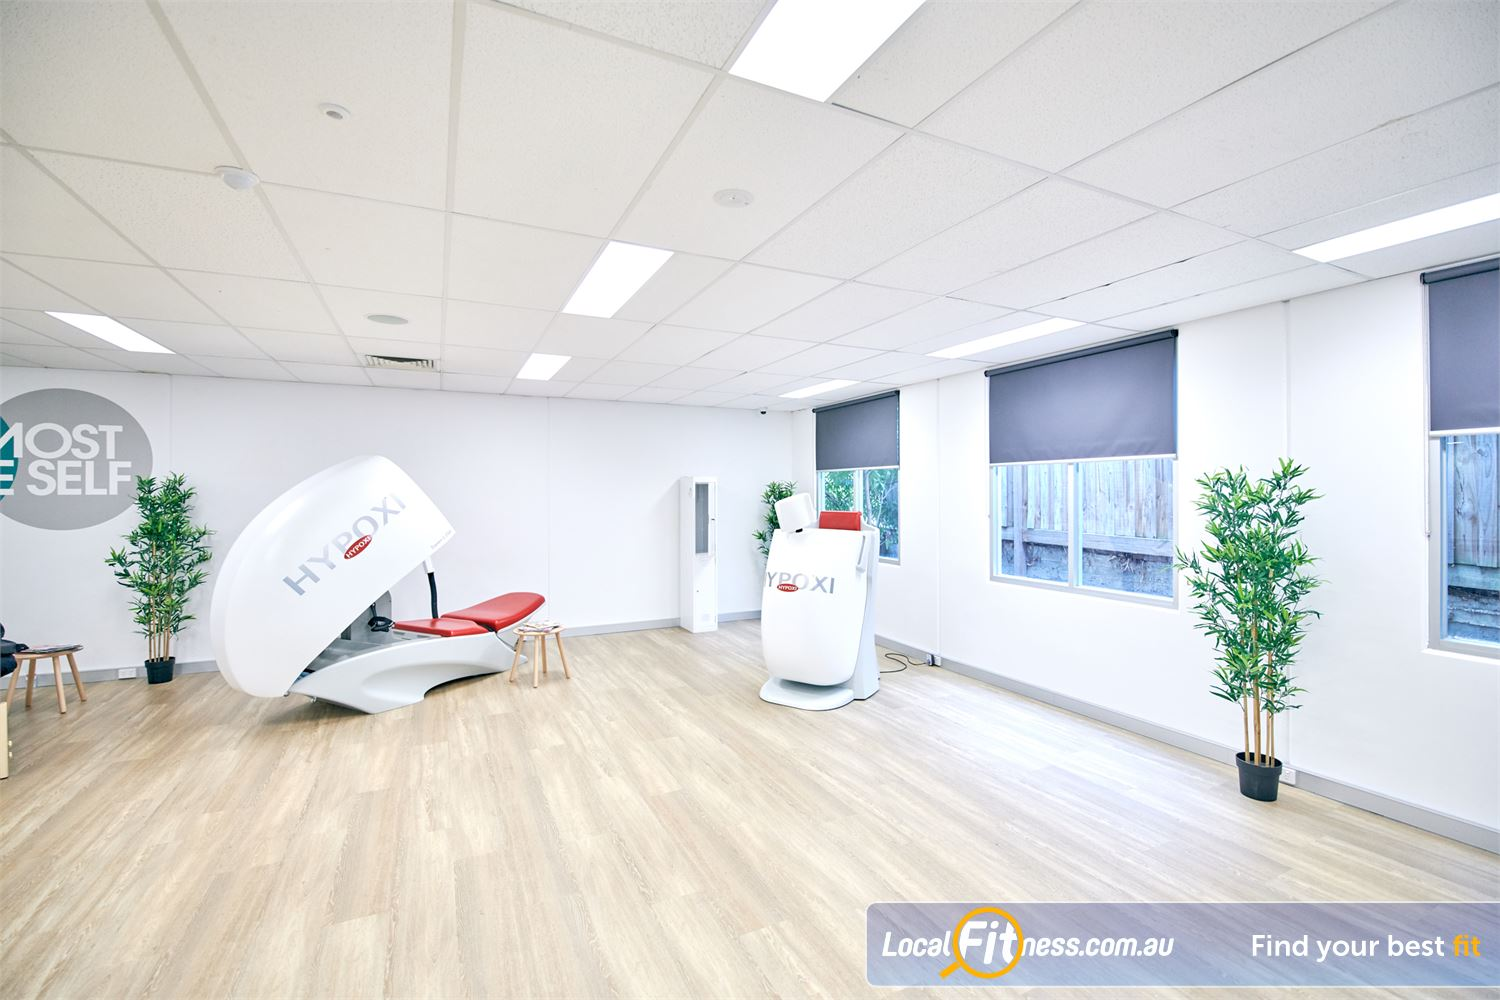 HYPOXI Weight Loss Near Camperdown The HYPOXI L250 is like a cycle machine from the future.